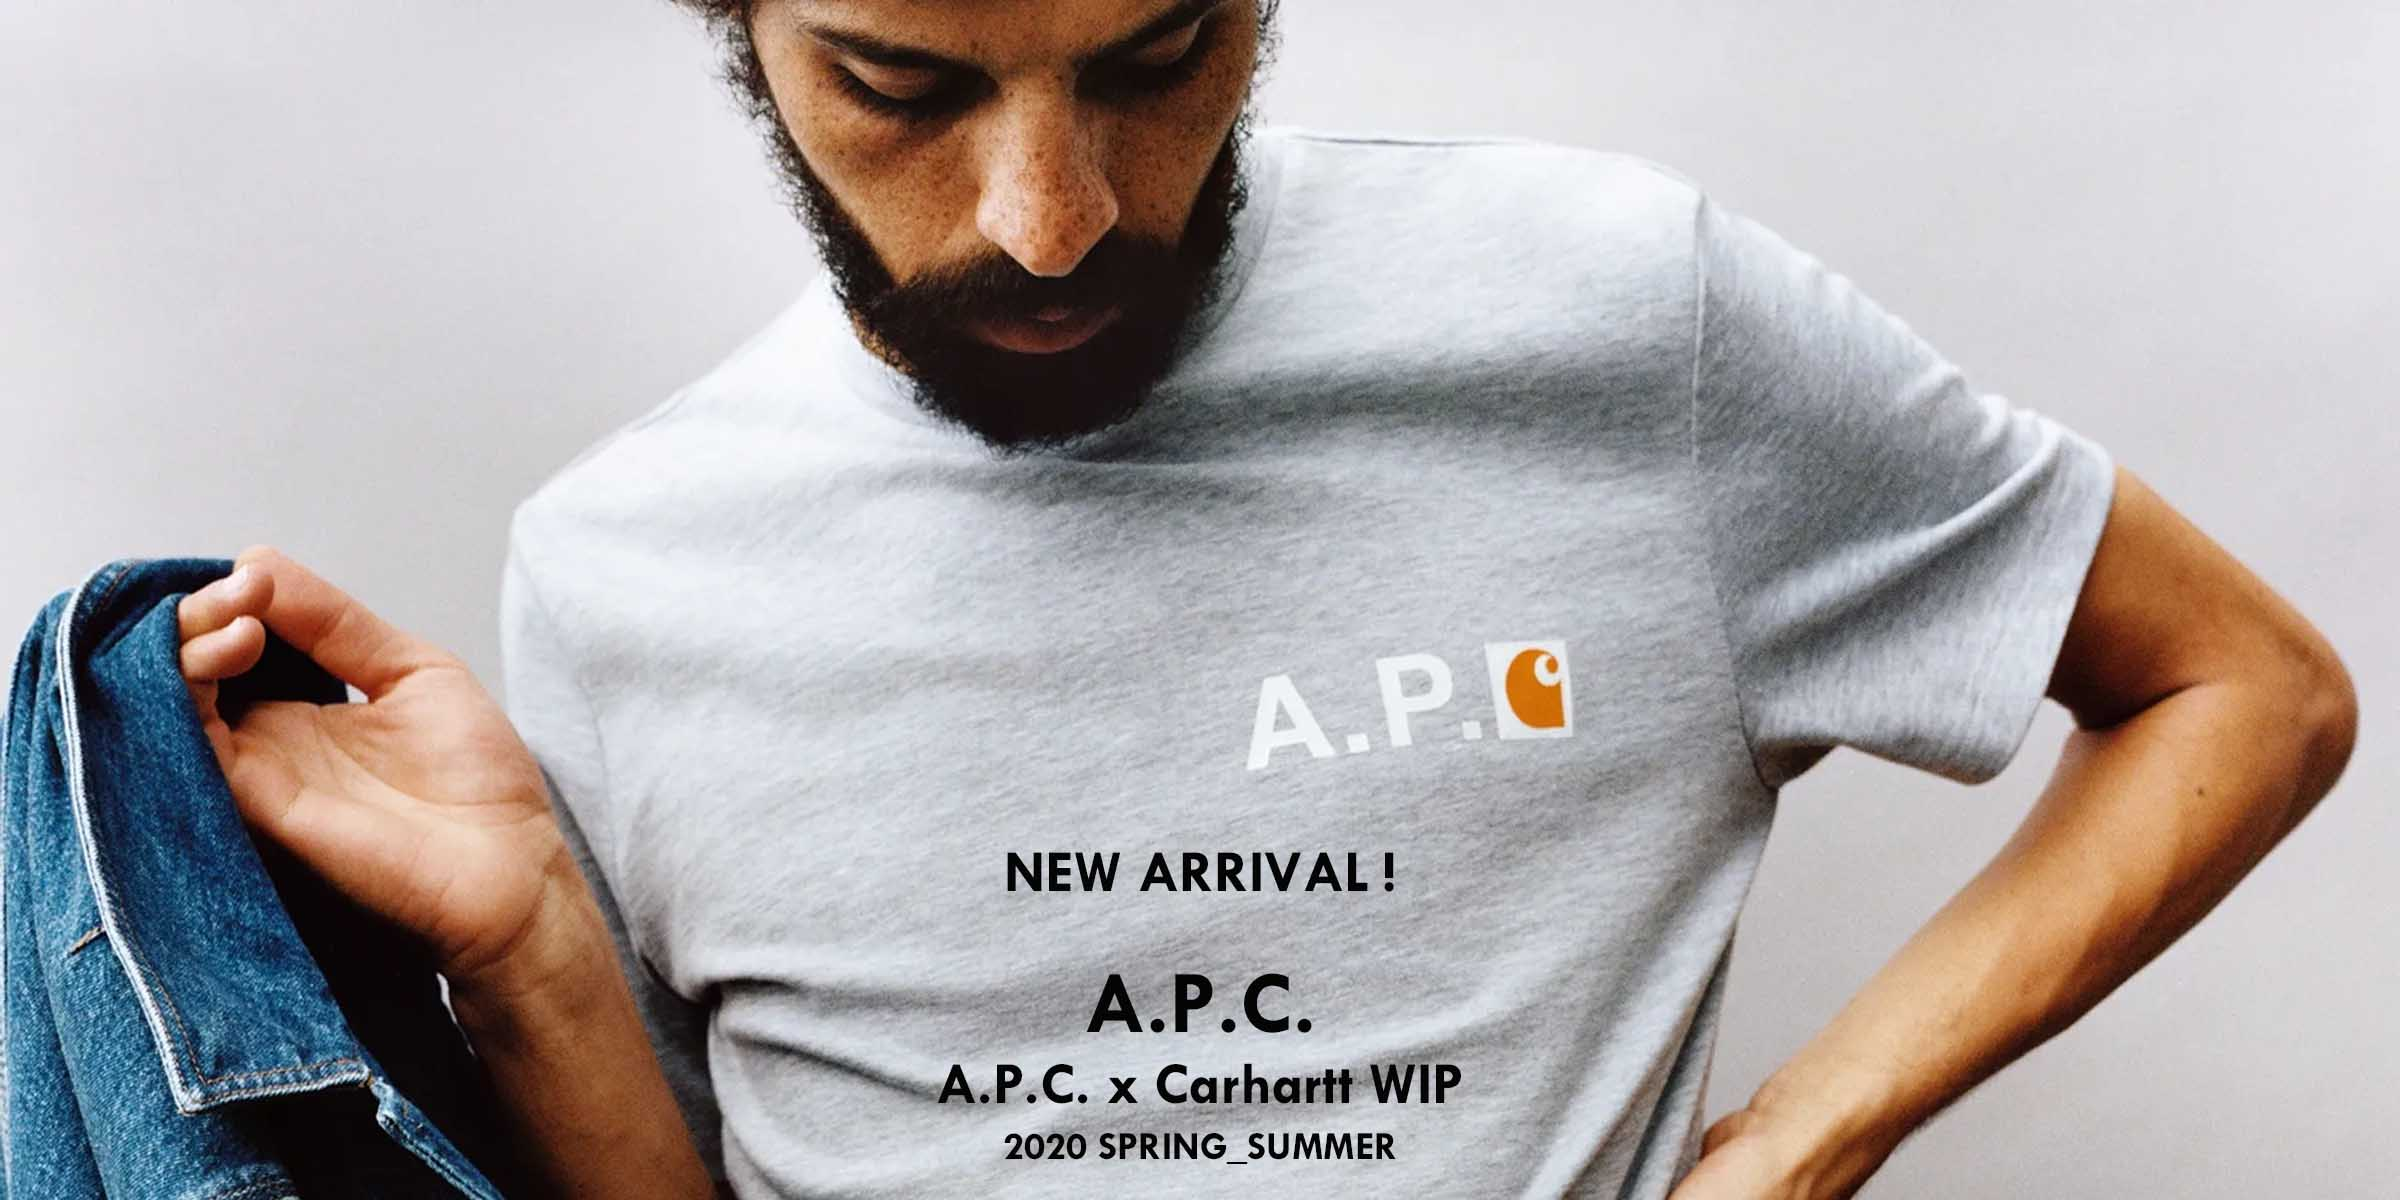 2020SPRING_SUMMER NEW ARRIVAL APC(アーペーセー)